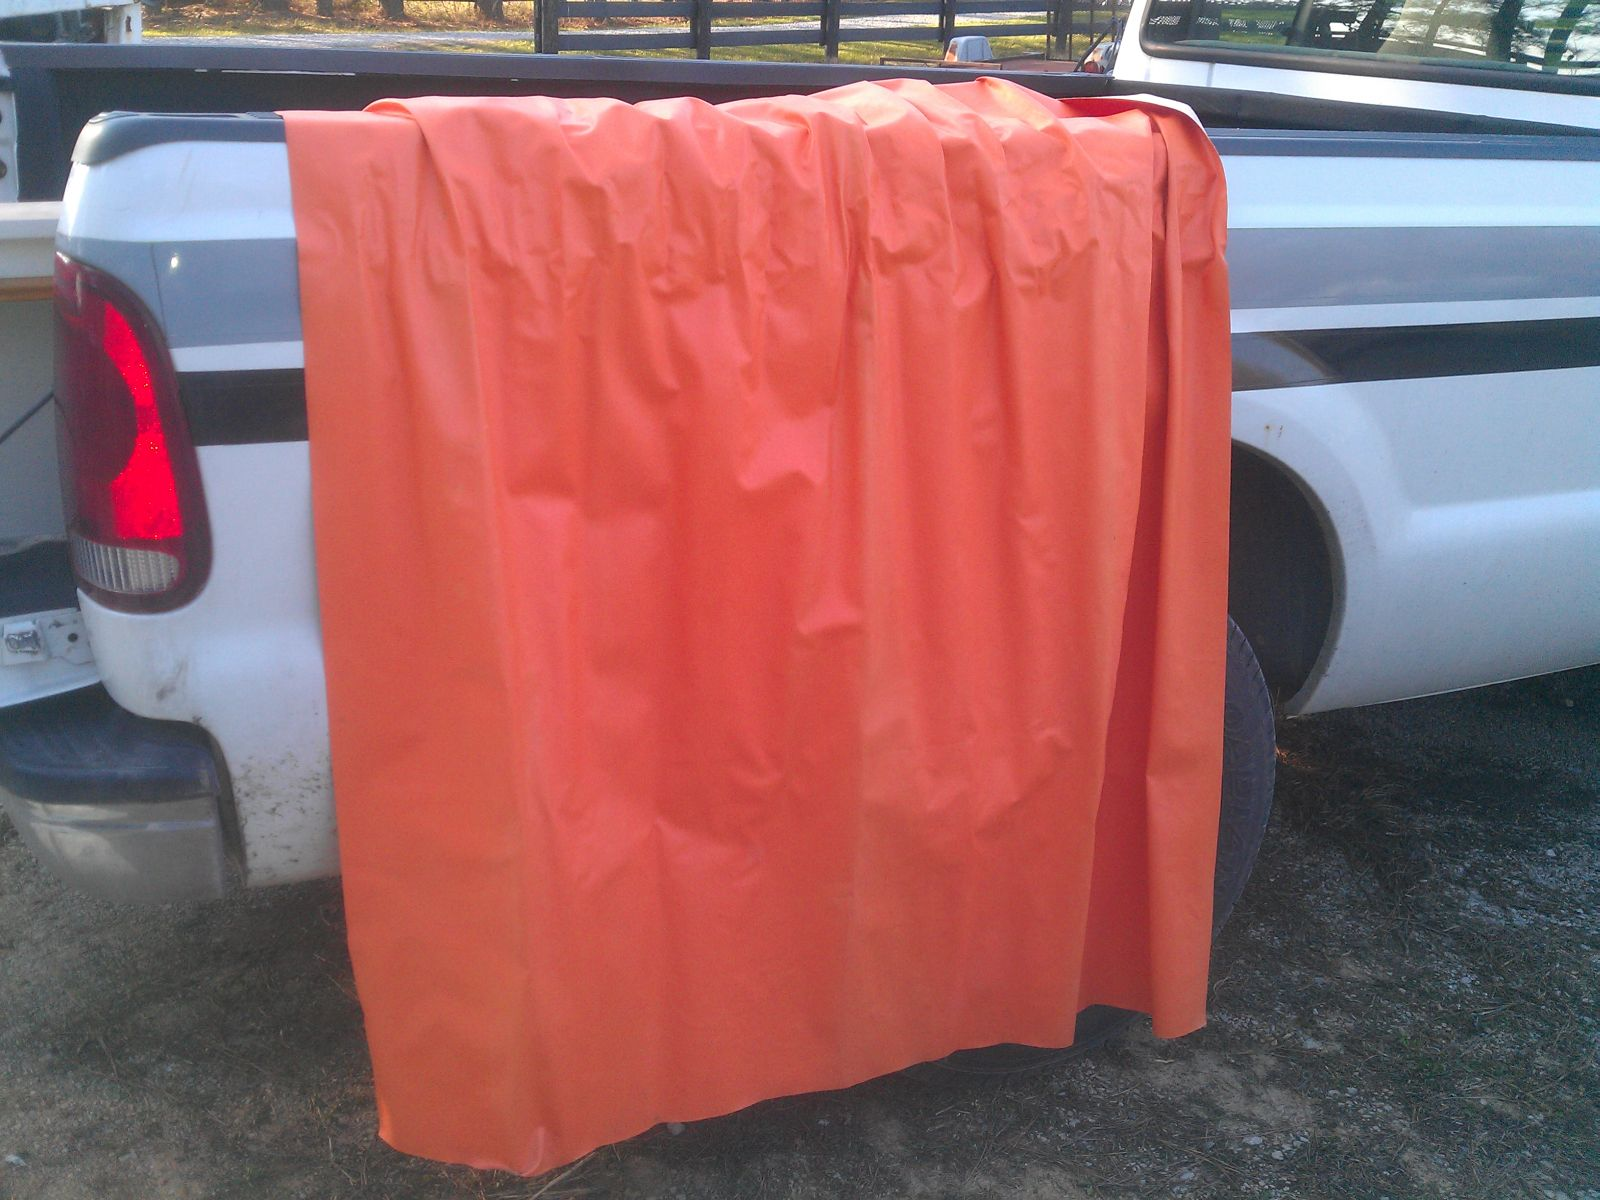 Click image for larger version  Name:74-argosy-orange-shower-curtain.jpg Views:115 Size:257.1 KB ID:182544